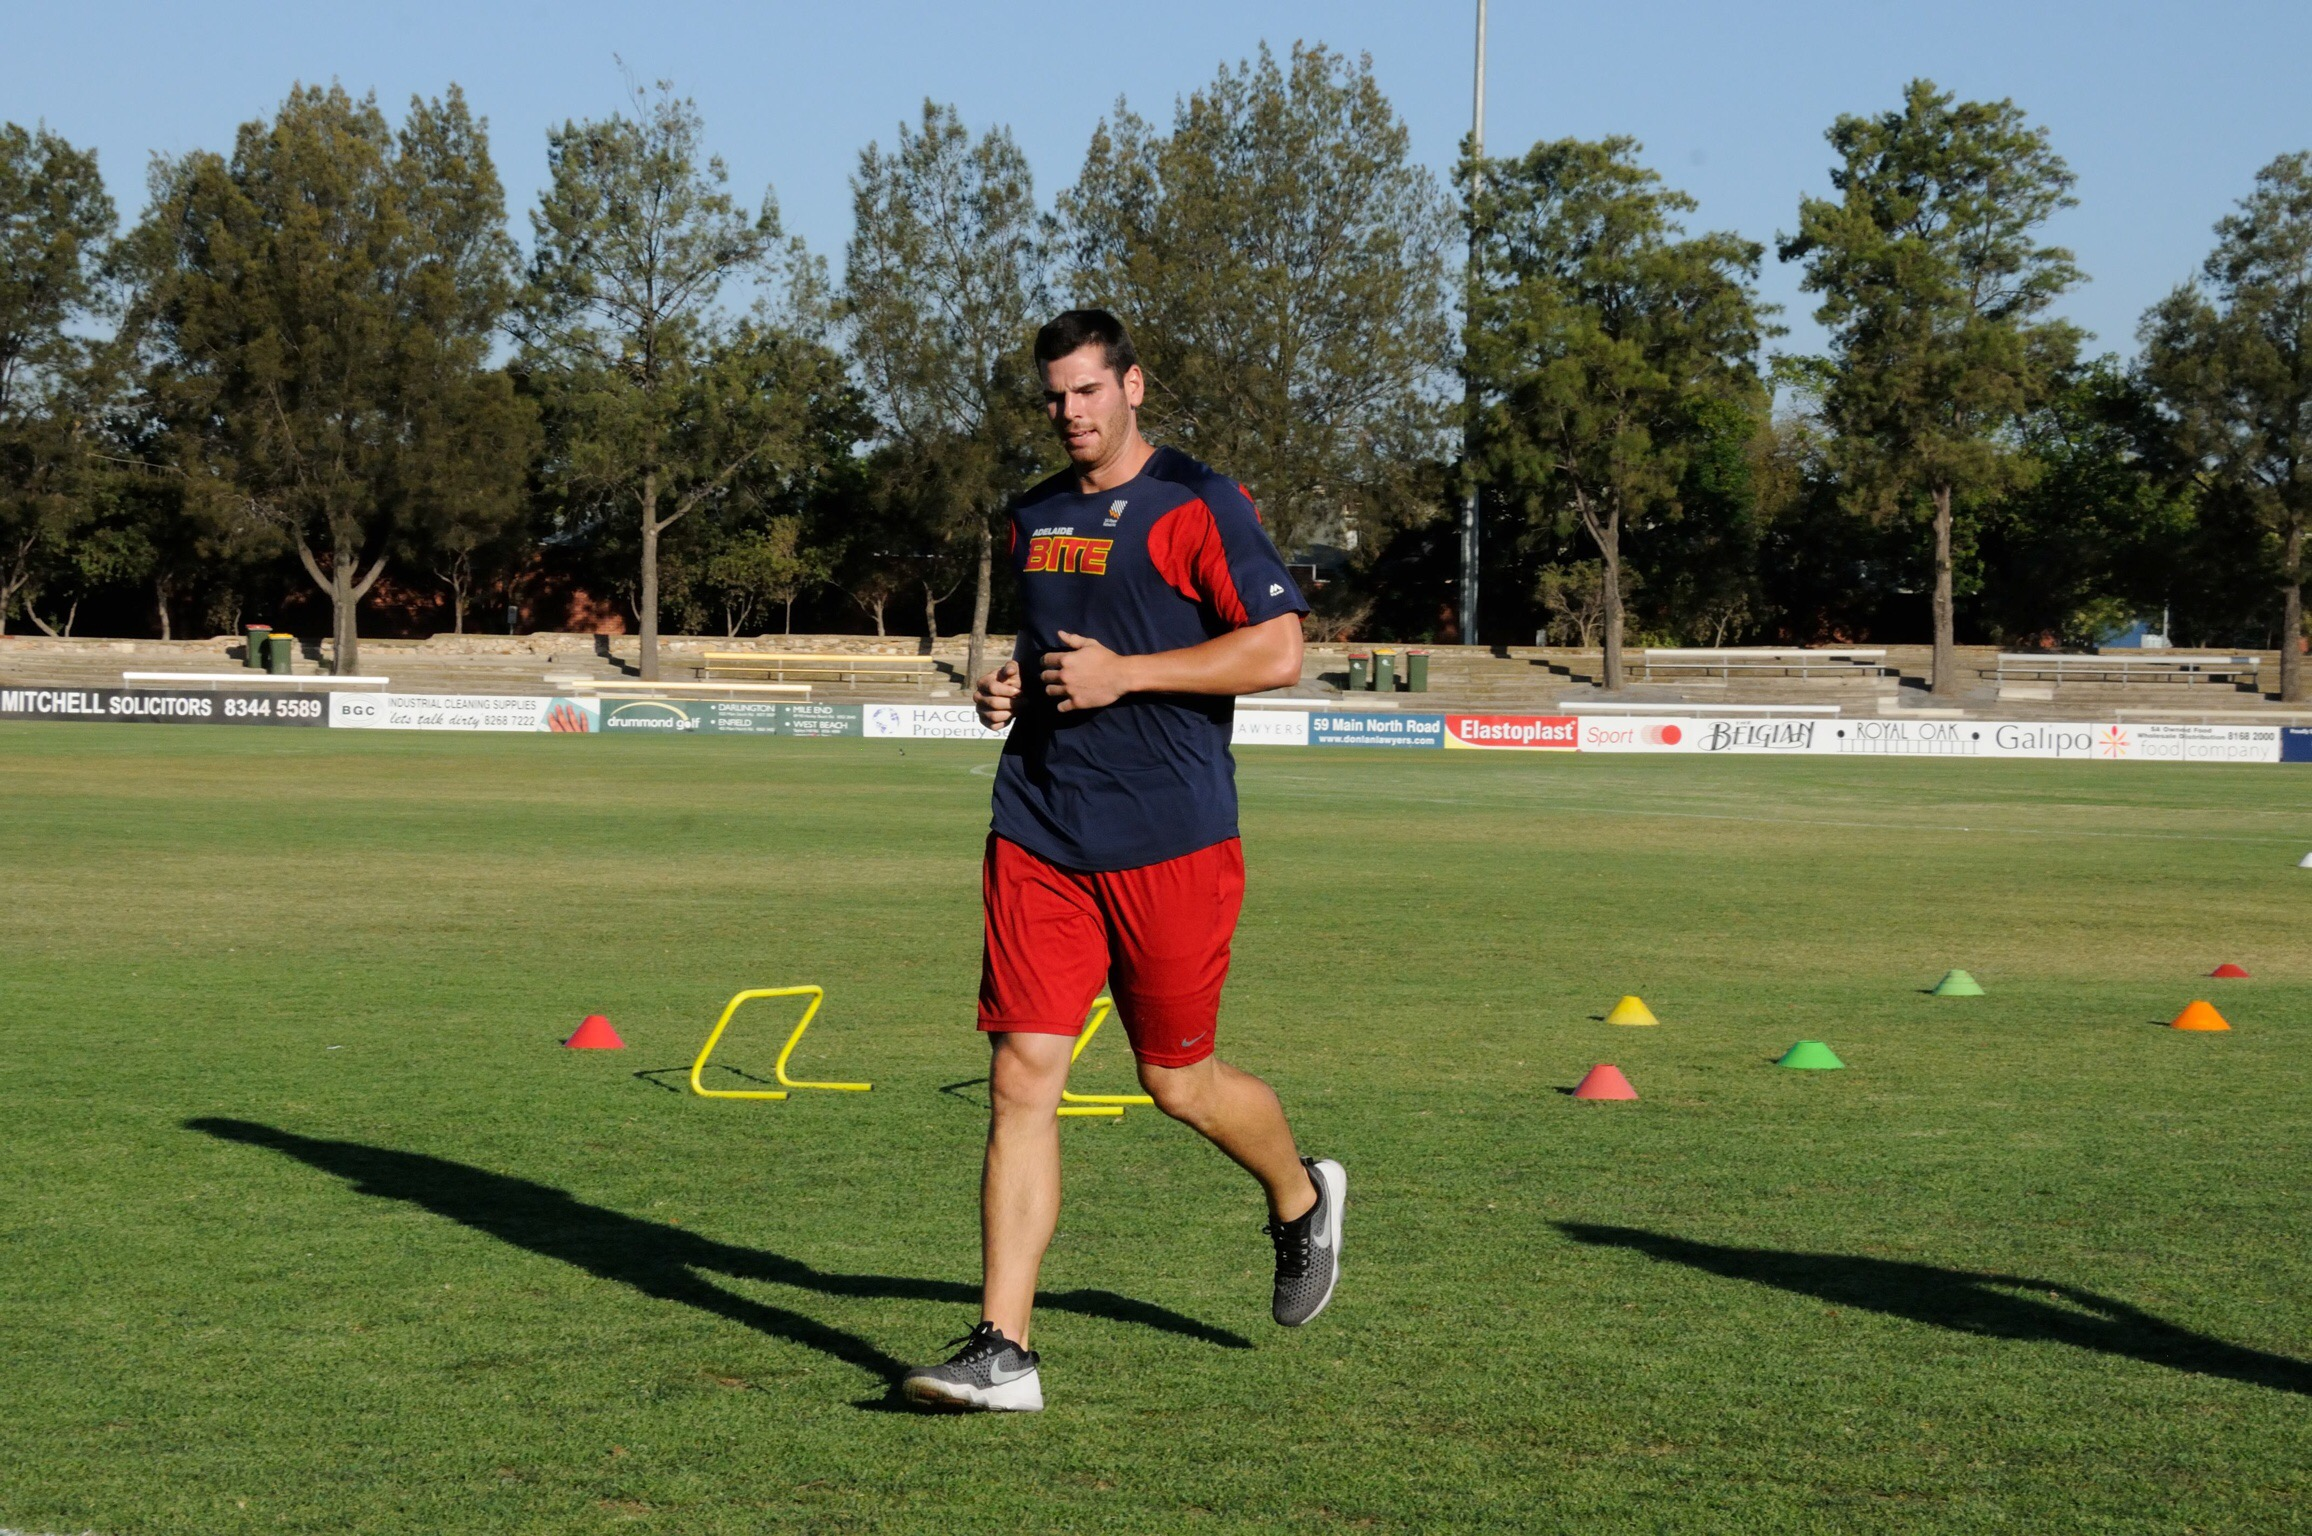 Adelaide Bites Marquee Player, Kyle Petty, gave it his all, coming a close second to the Bite's Strength and Condition coach Darren Fidge in the Fitness Challenge set by Olympic and World Champion Pole Vaulter Dmitri Markov